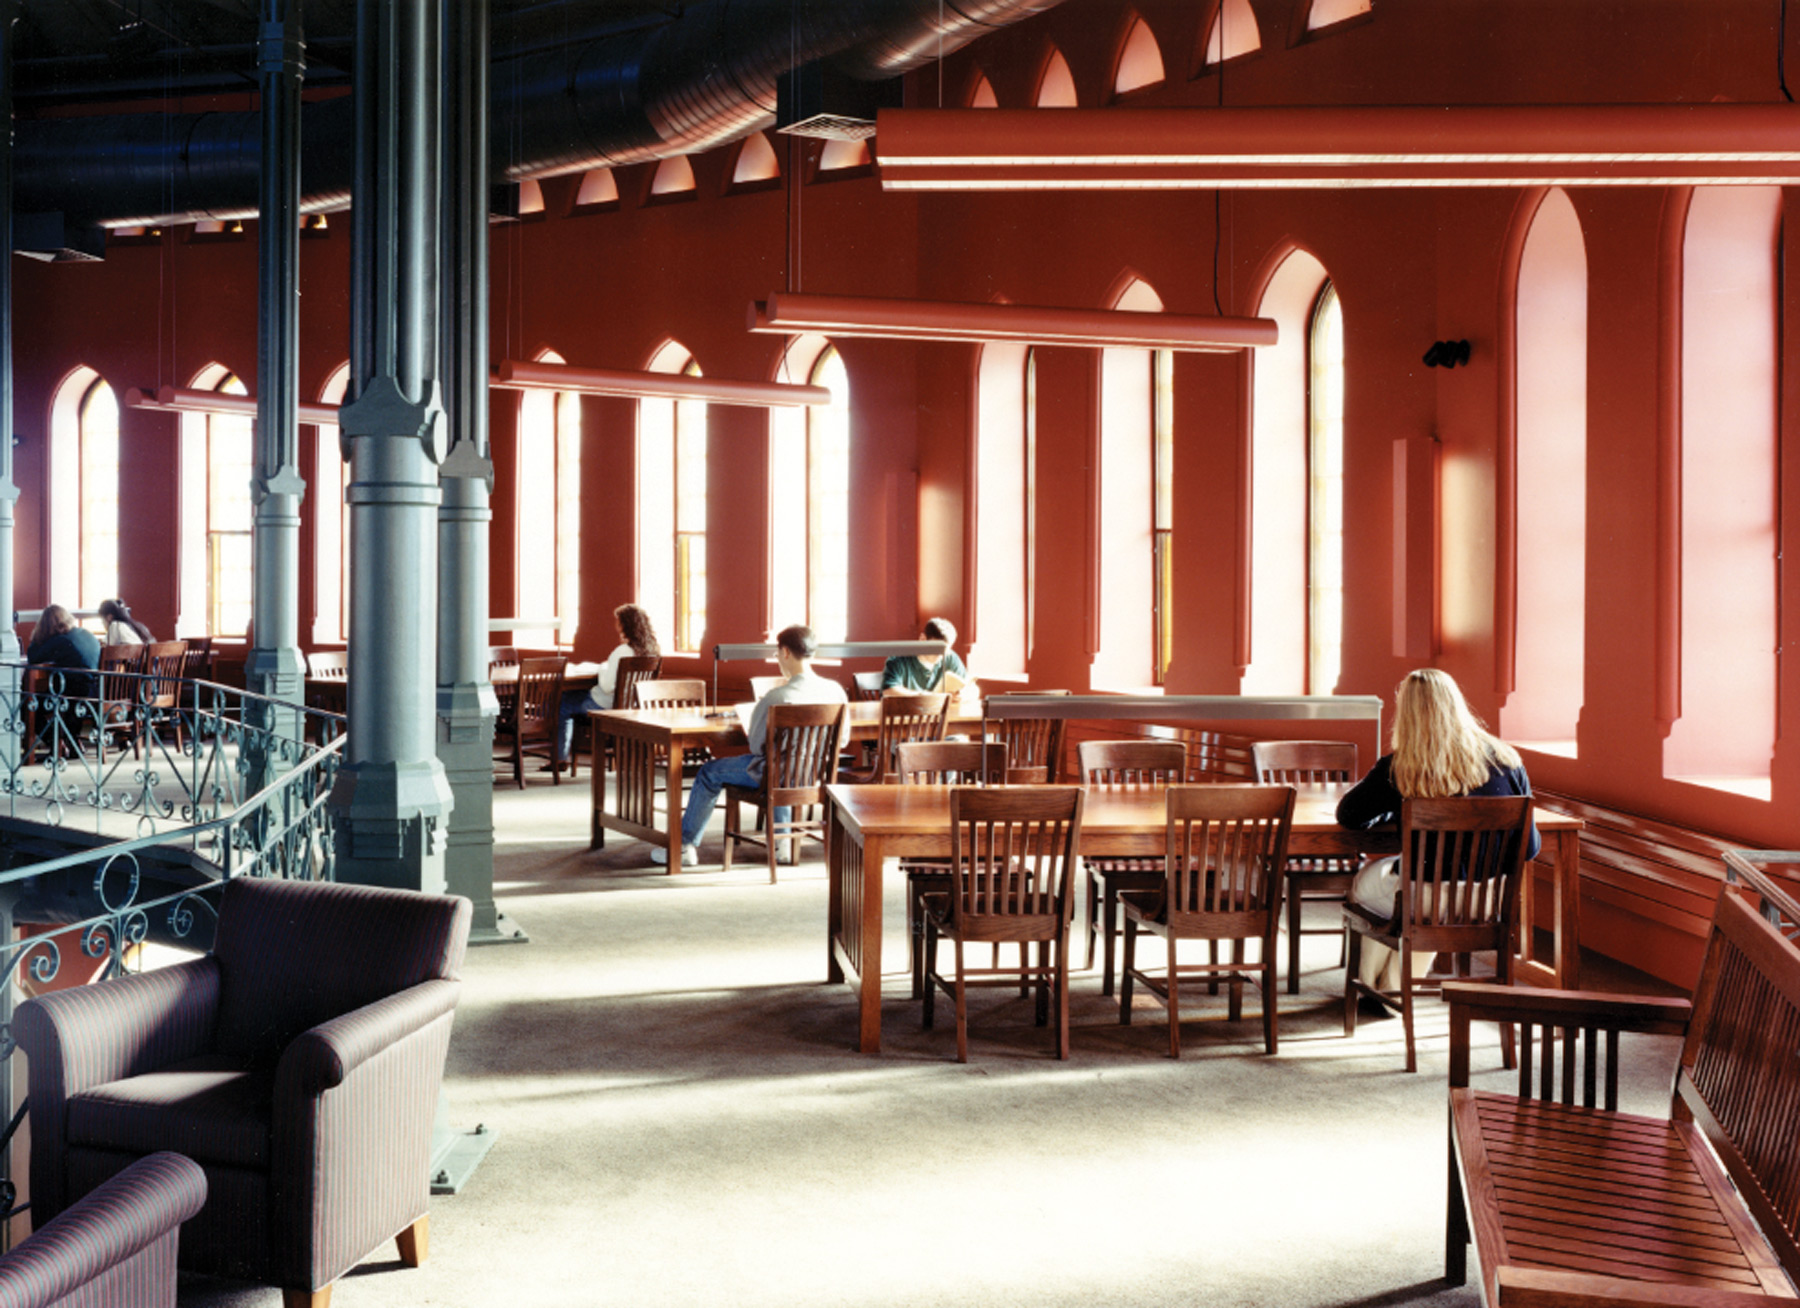 Students studying at tables on one of the elevated levels of the Nott Memorial, with abundant daylight streaming in through arched windows.